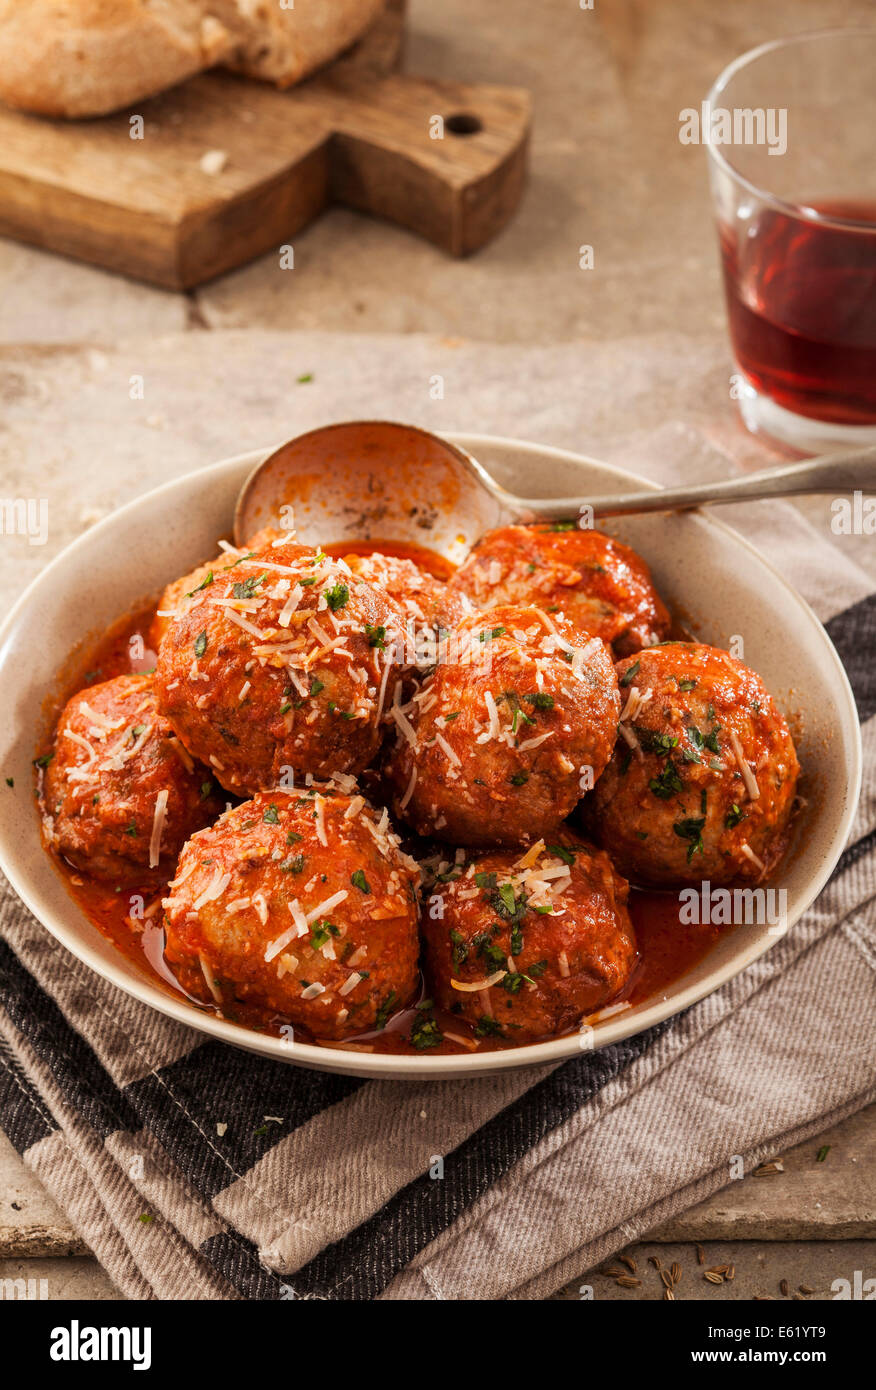 Meatballs cooked in tomato sauce in bowl on grey backround - Stock Image